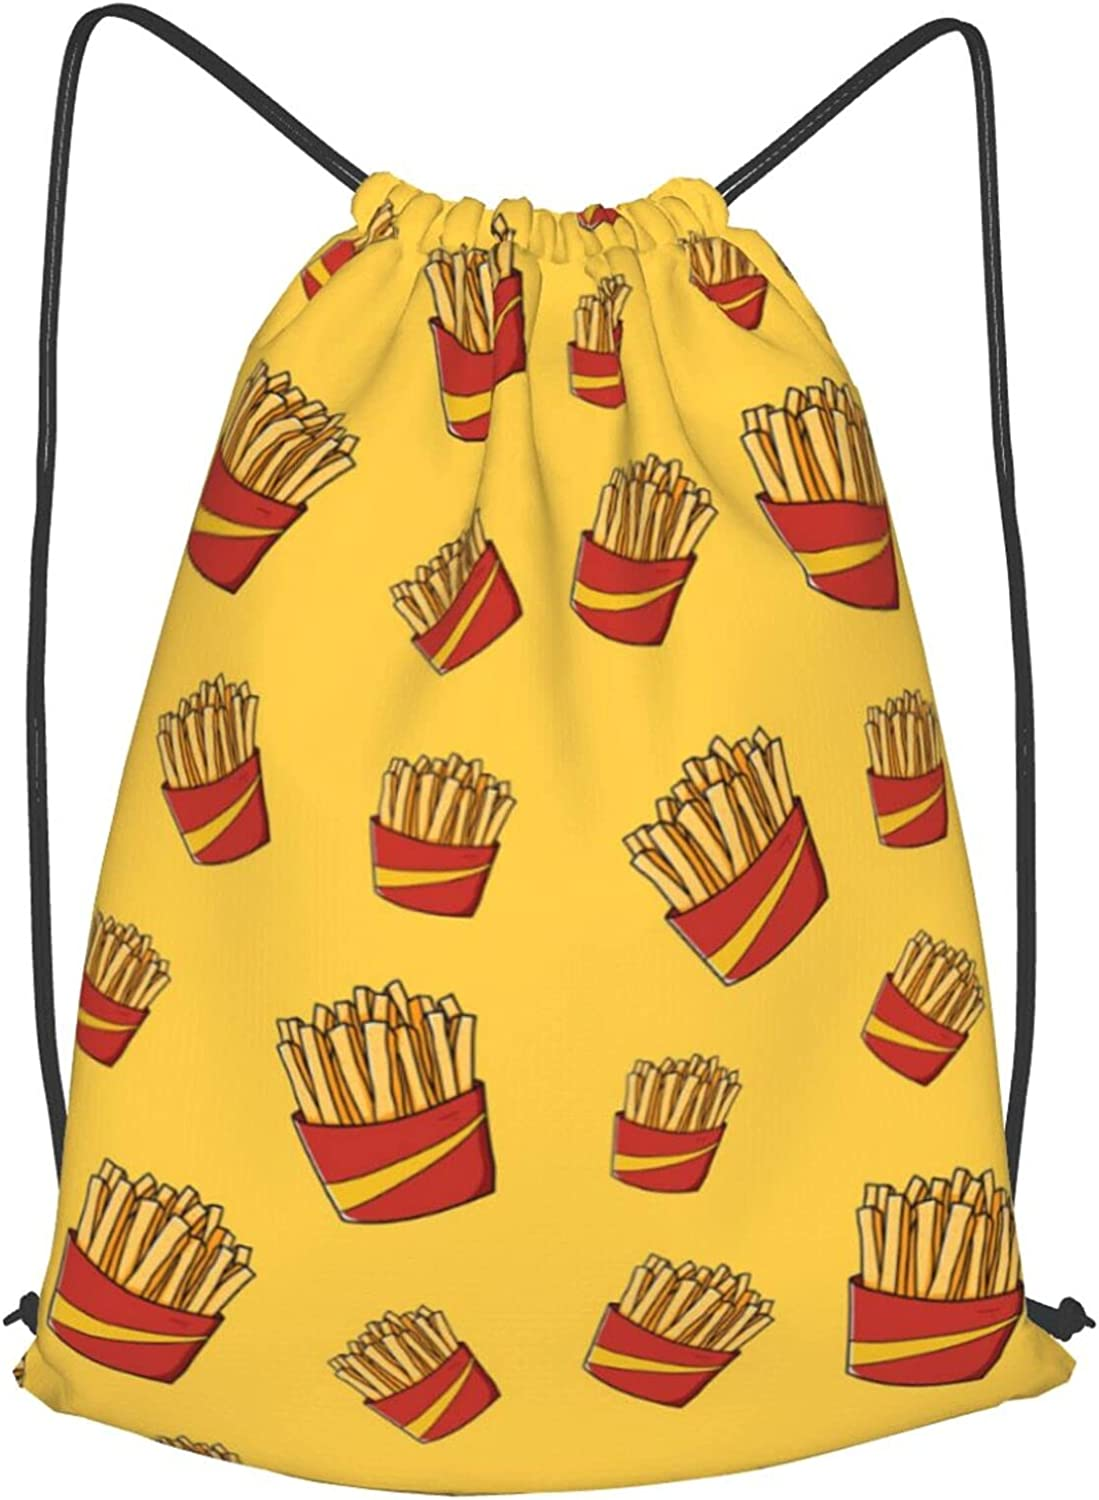 Drawstring Bag French Fries Potato Light Ranking TOP1 Sport Backpa Free shipping anywhere in the nation